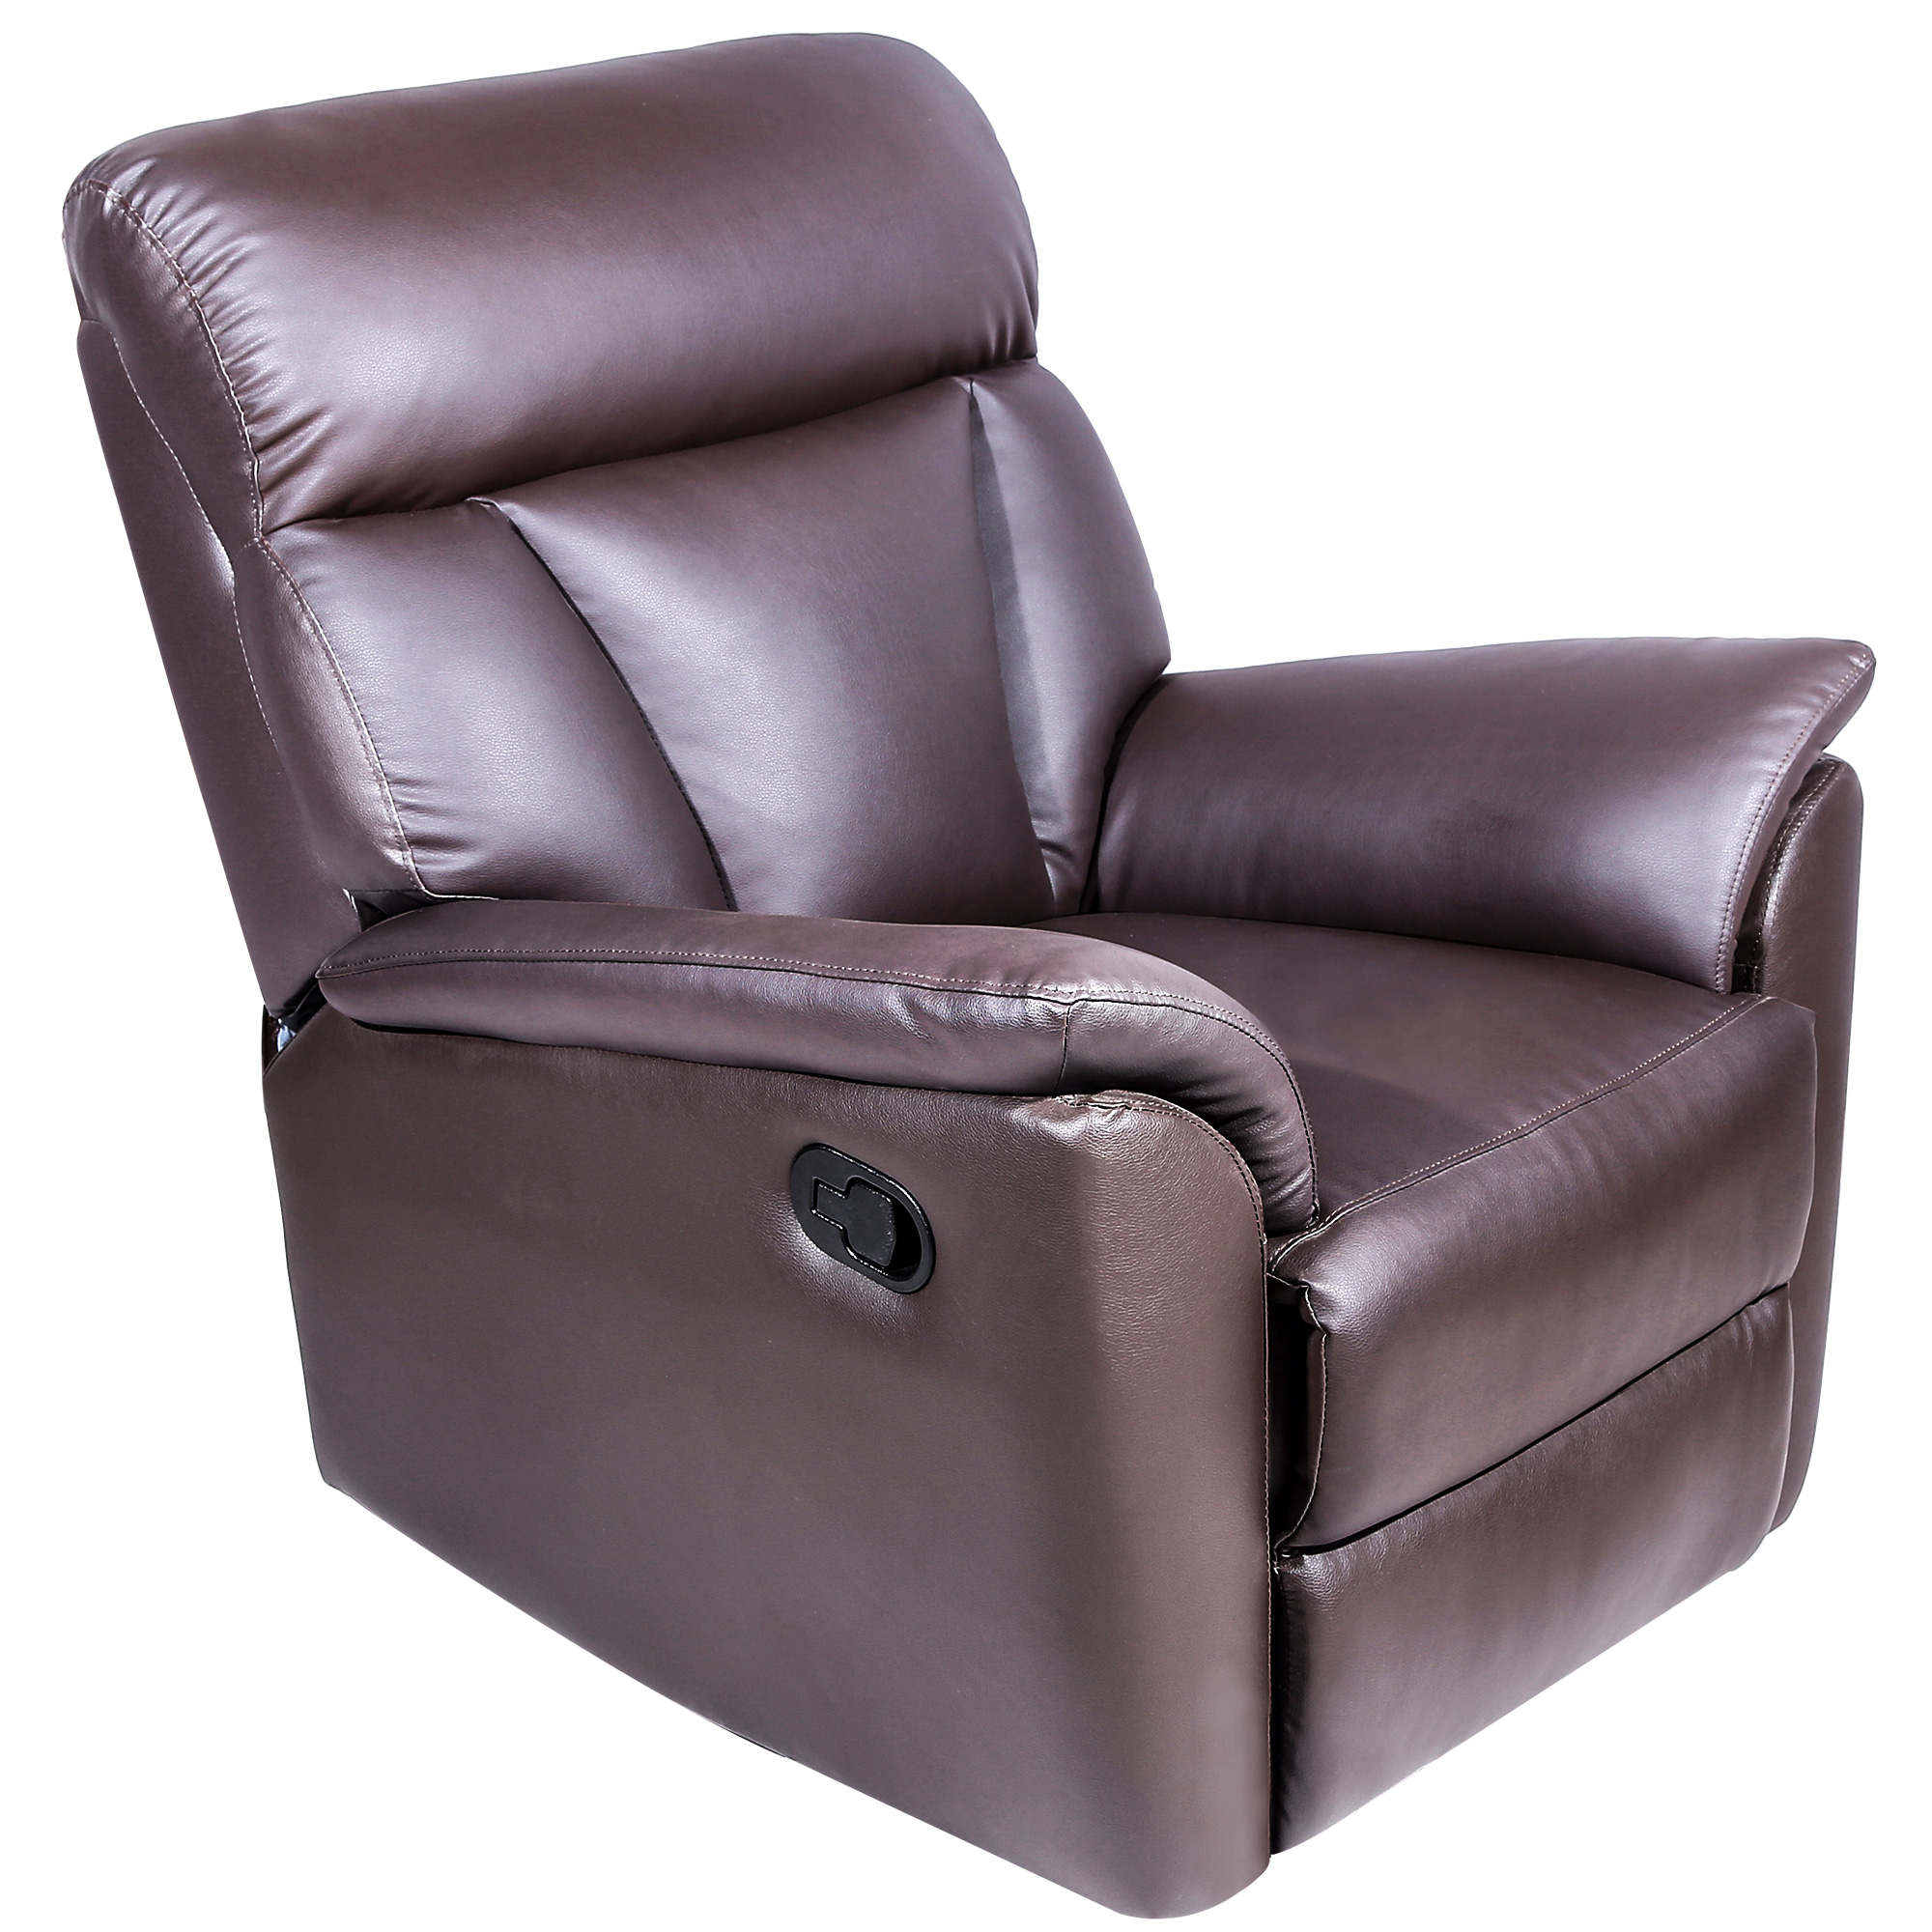 Harper&Bright Designs Recliner Sofa Chair PU Leather Ergonomic Lounge